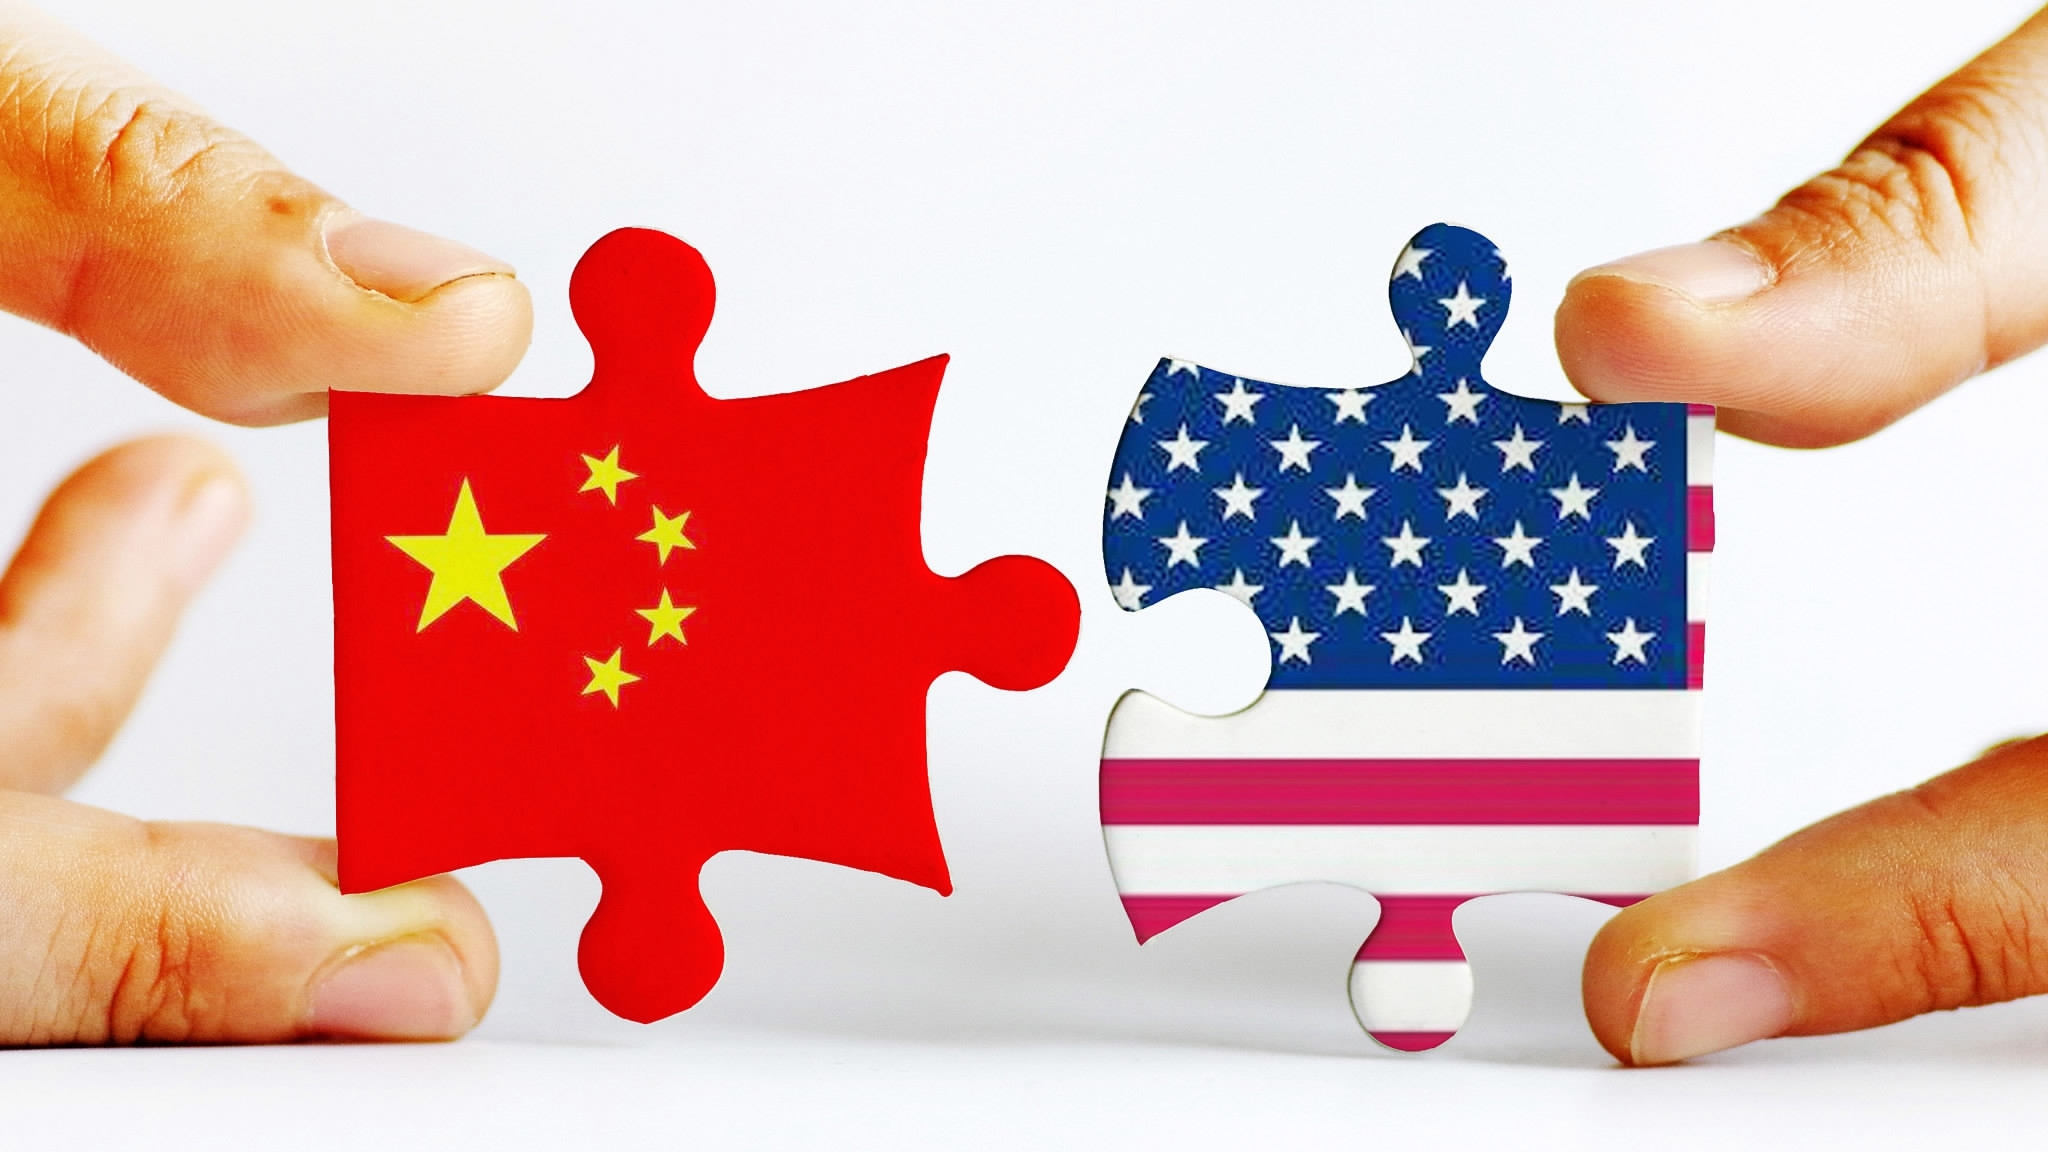 Unilaterally initiating trade war wrong prescription, says Chinese state councilor